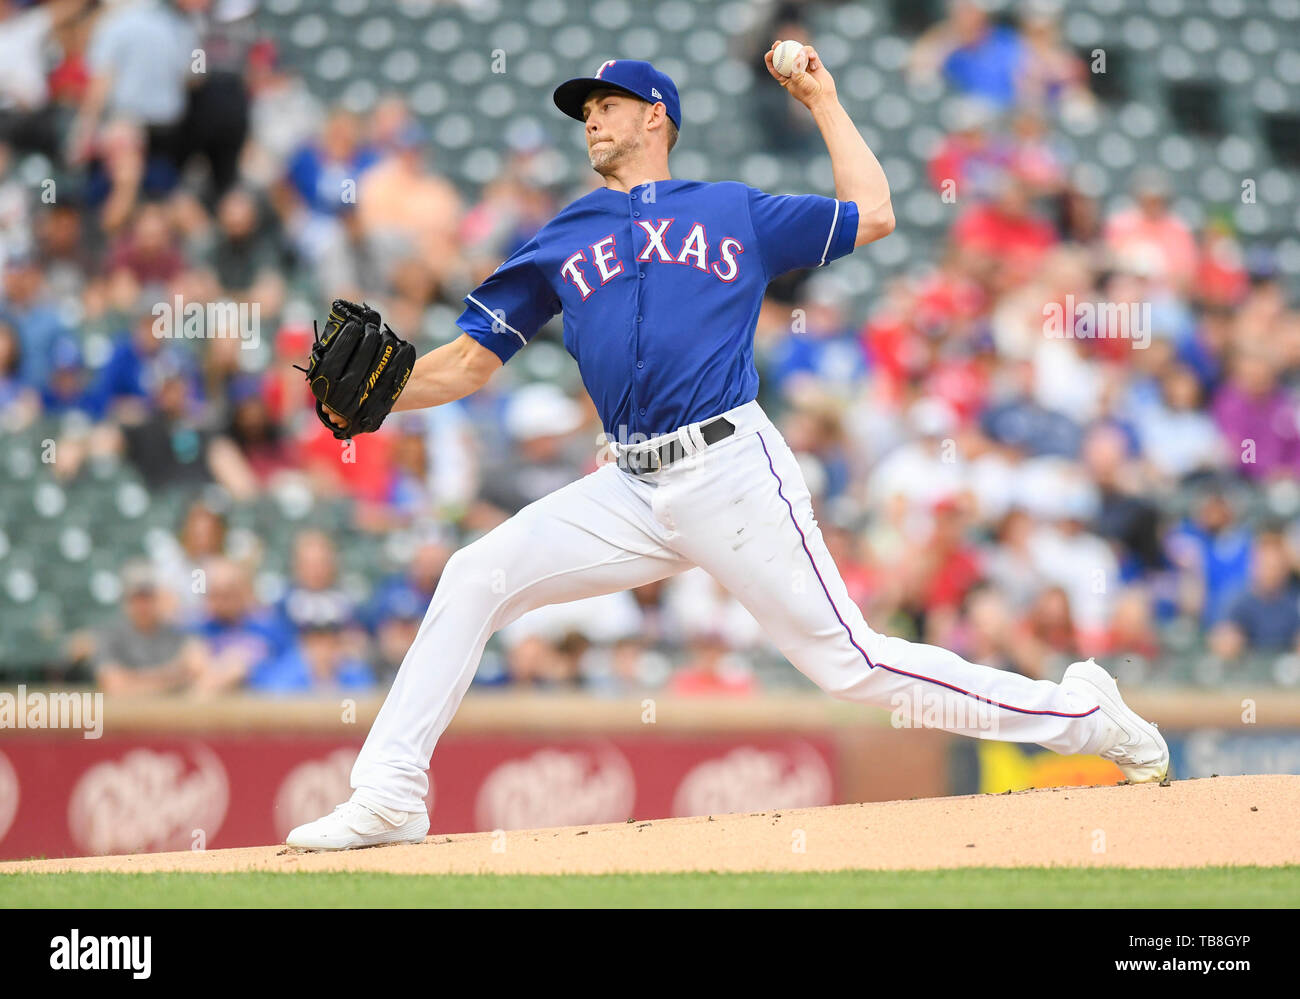 May 30, 2019: t23 pitched 5 innings with 8 strike outs and gave up 3 earned runs during an MLB game between the Kansas City Royals and the Texas Rangers at Globe Life Park in Arlington, TX Kansas City defeated Texas 4-2 Albert Pena/CSM. - Stock Image